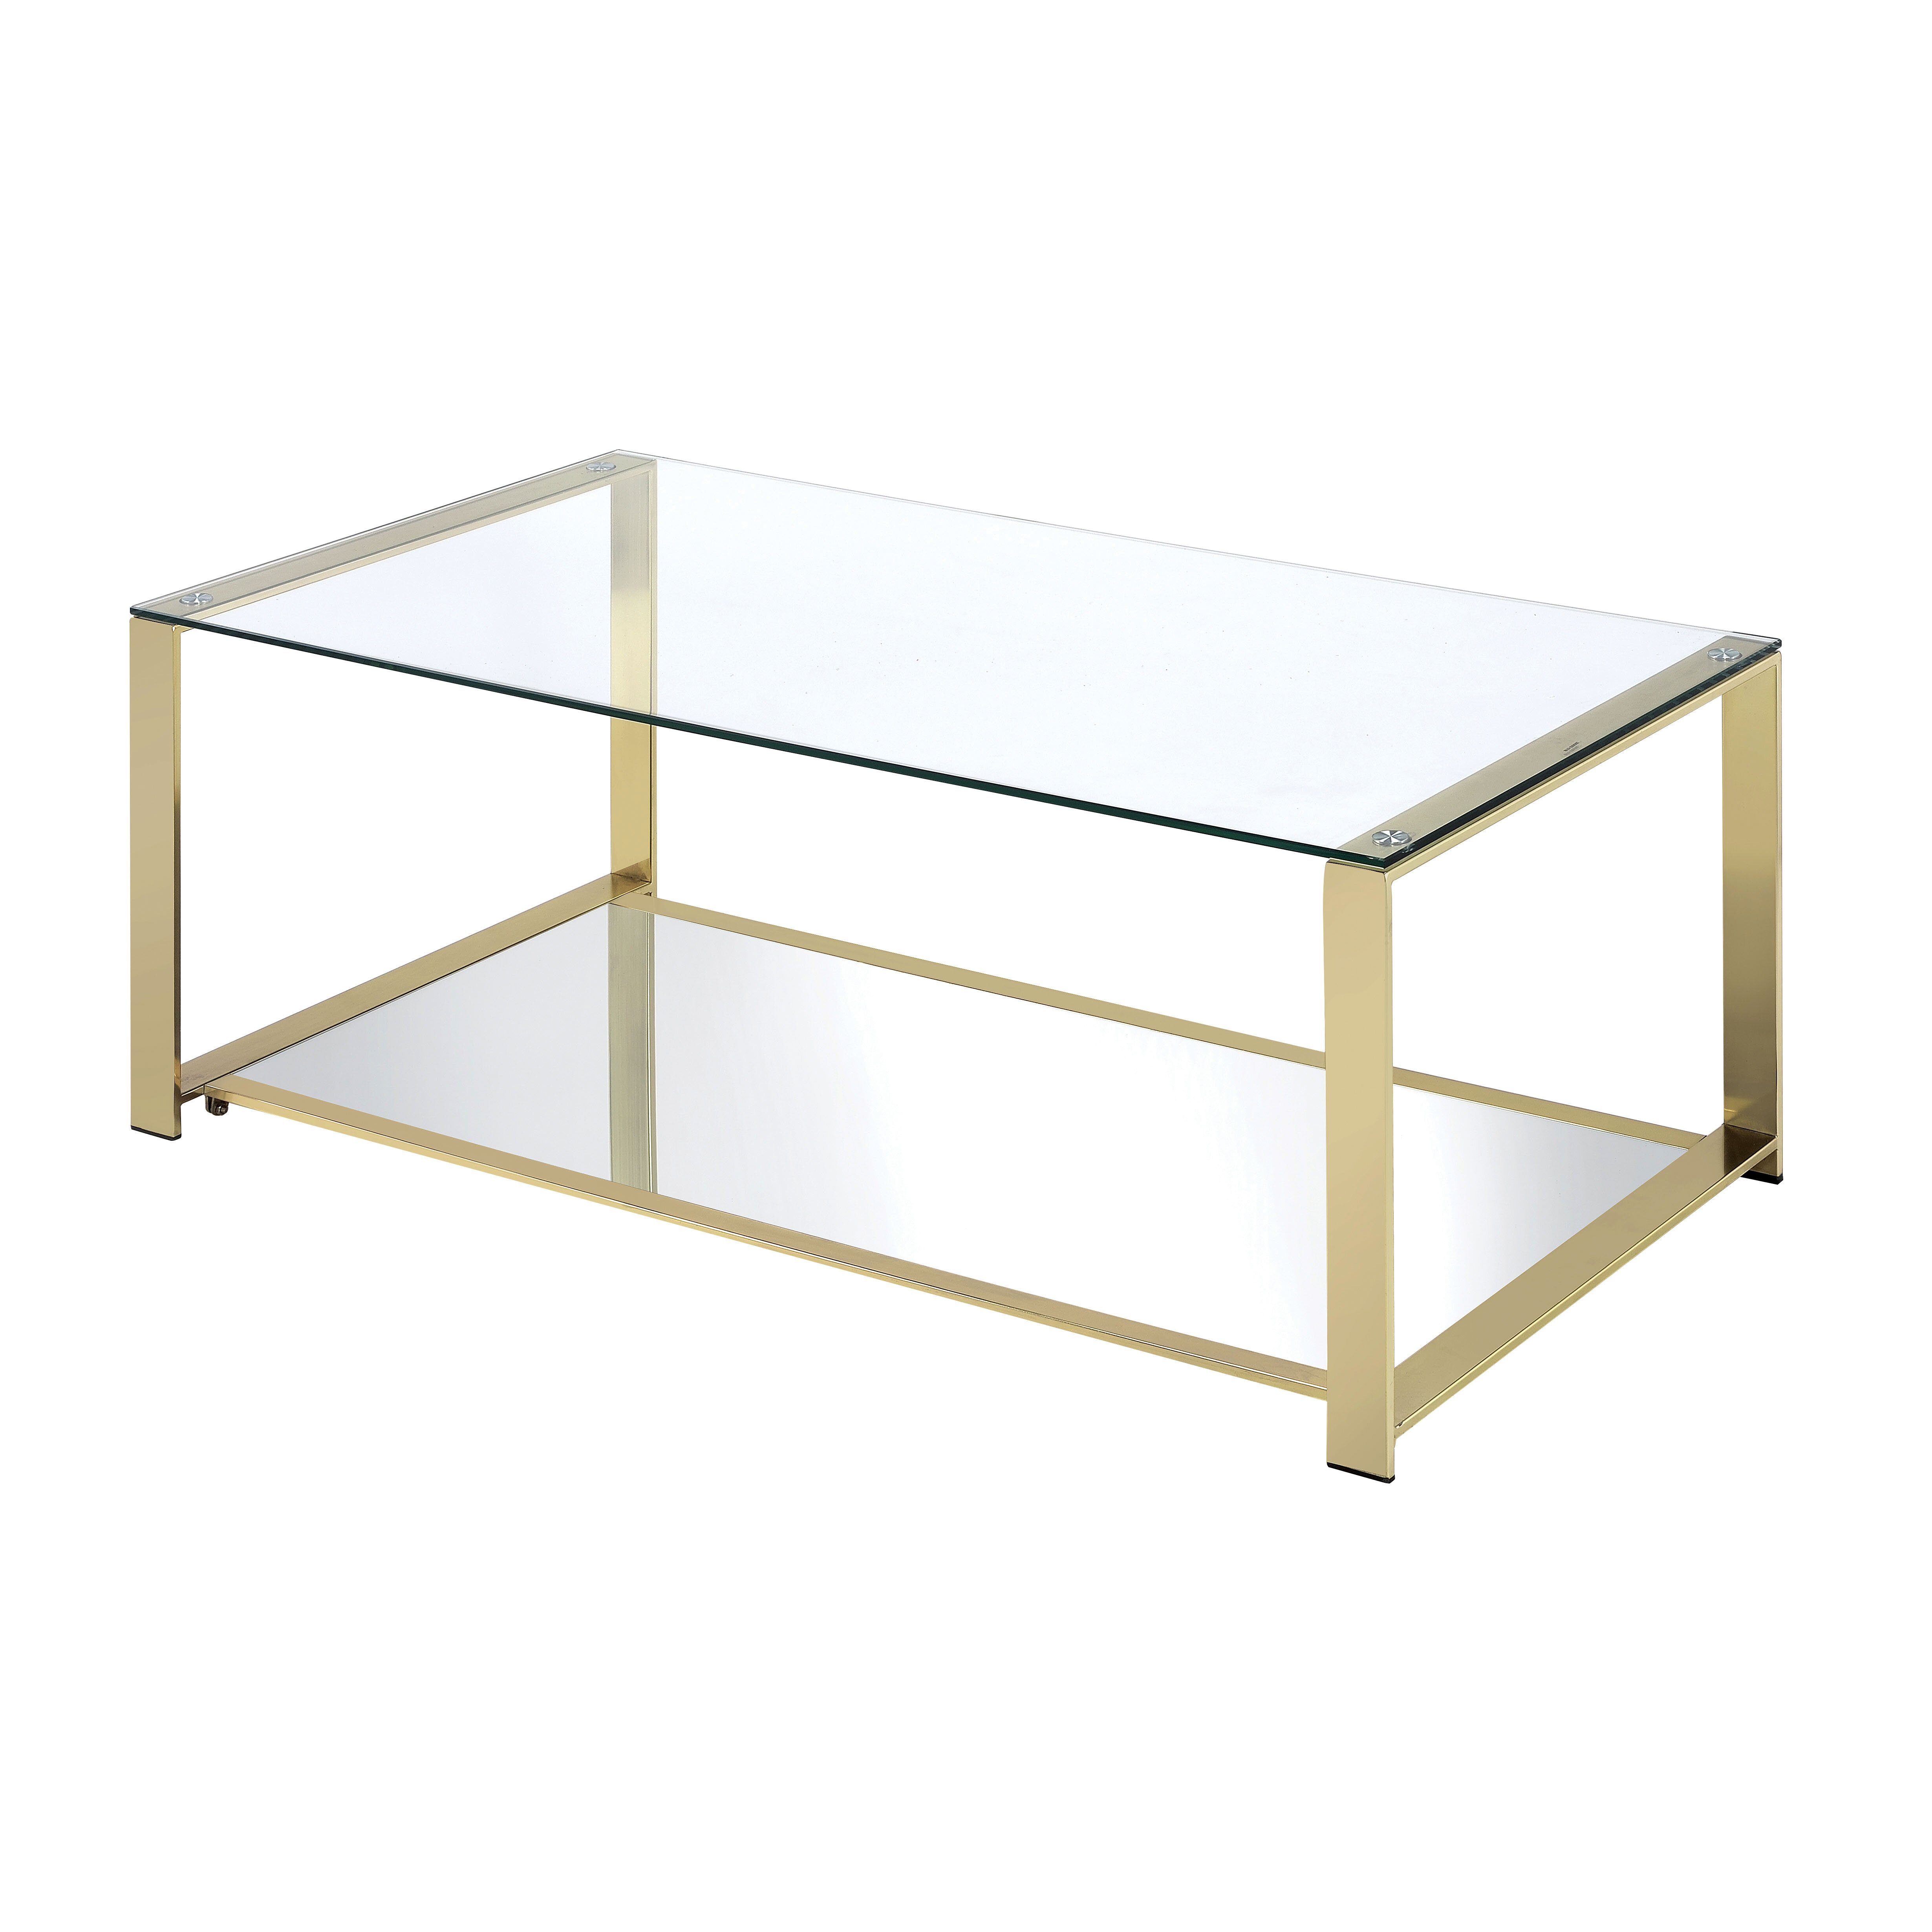 Mercer41 matthau metal frame coffee table reviews wayfair for Metal frame glass coffee table